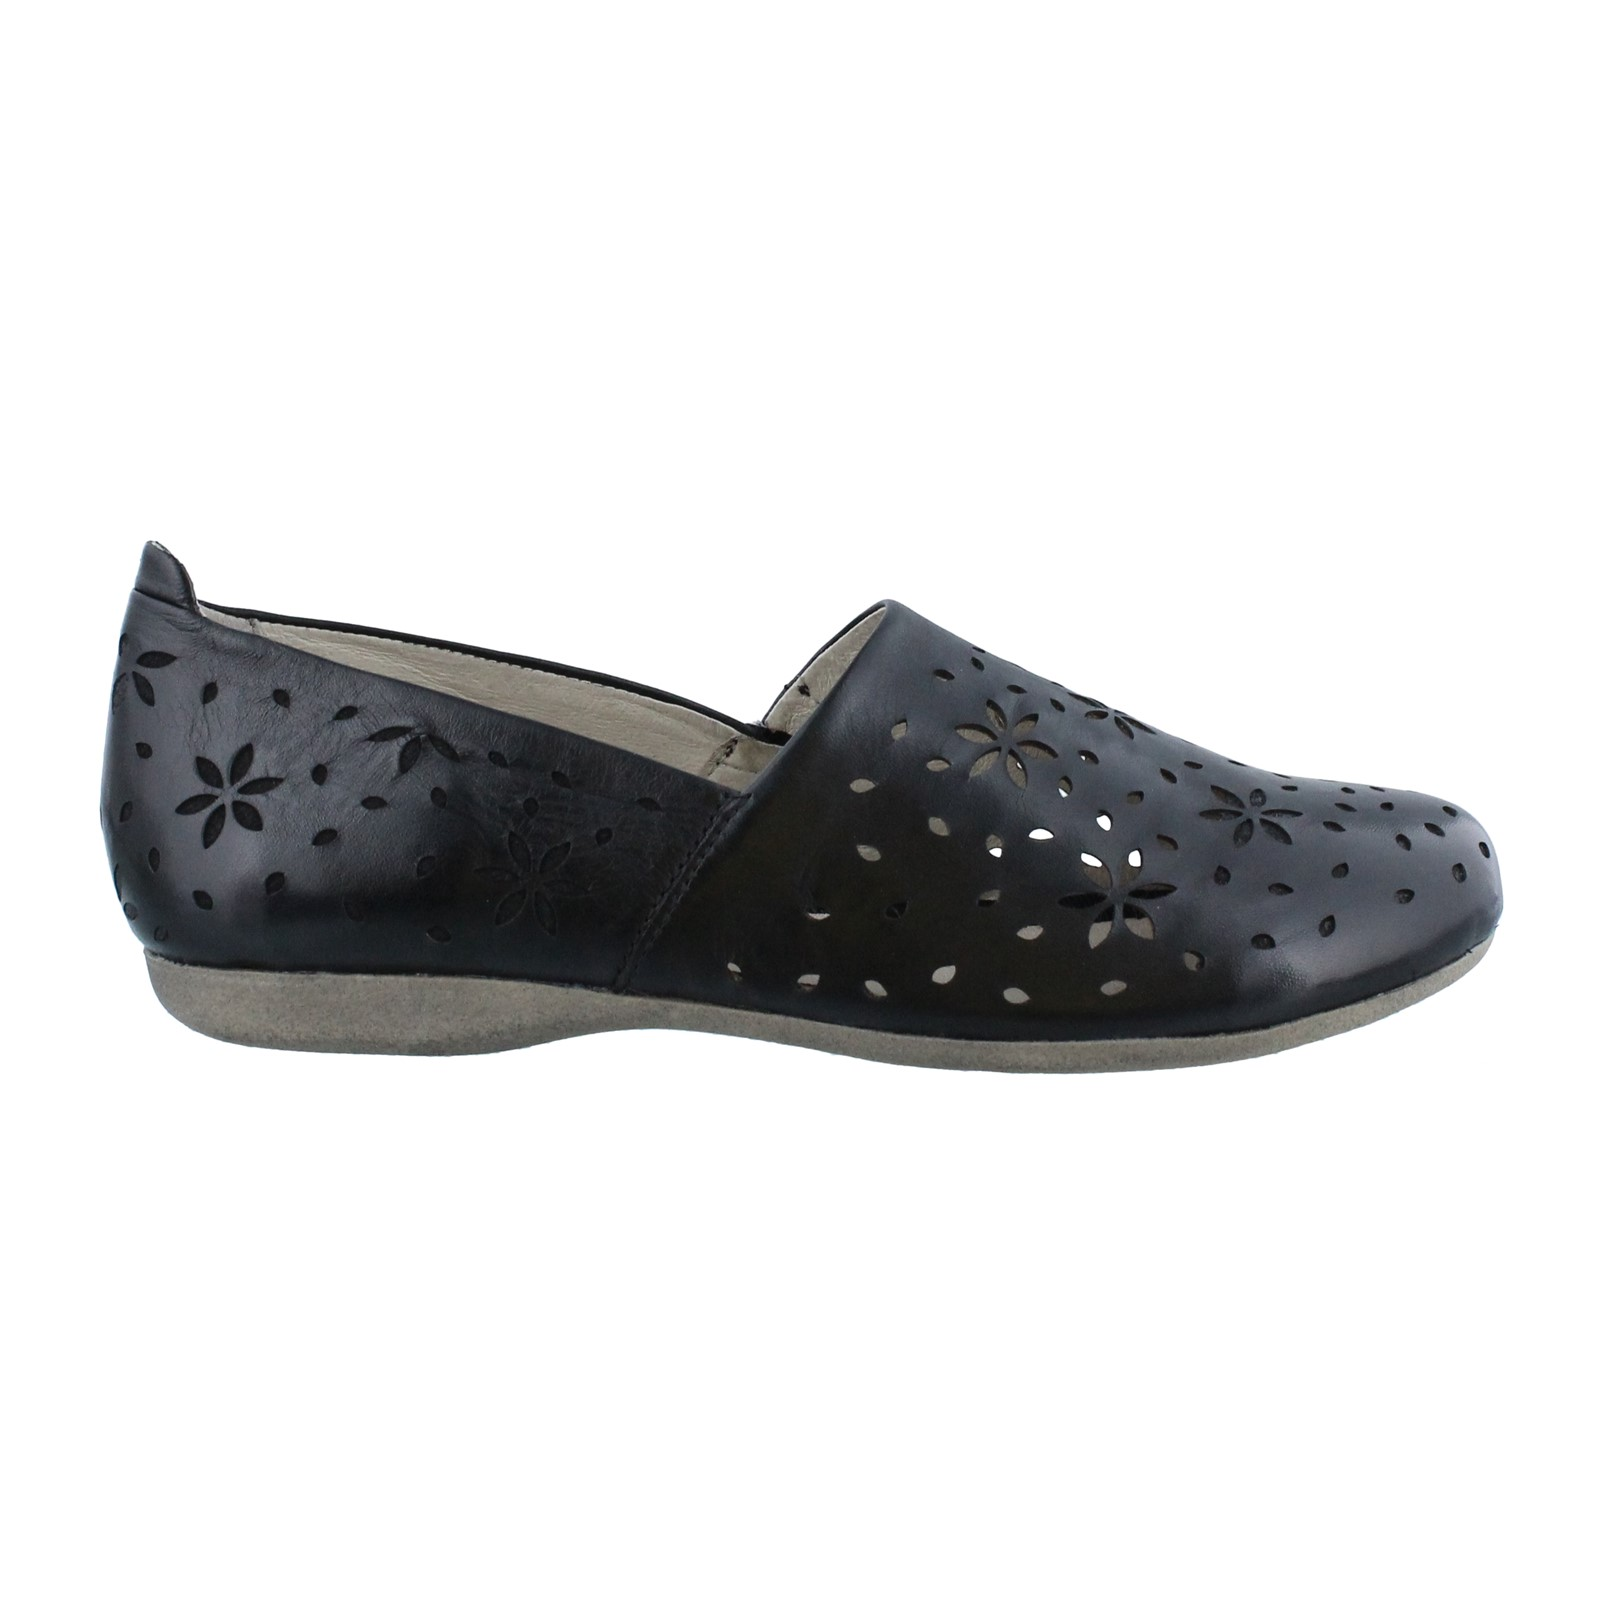 Women's Josef Seibel, Fiona 31 Slip on Shoe